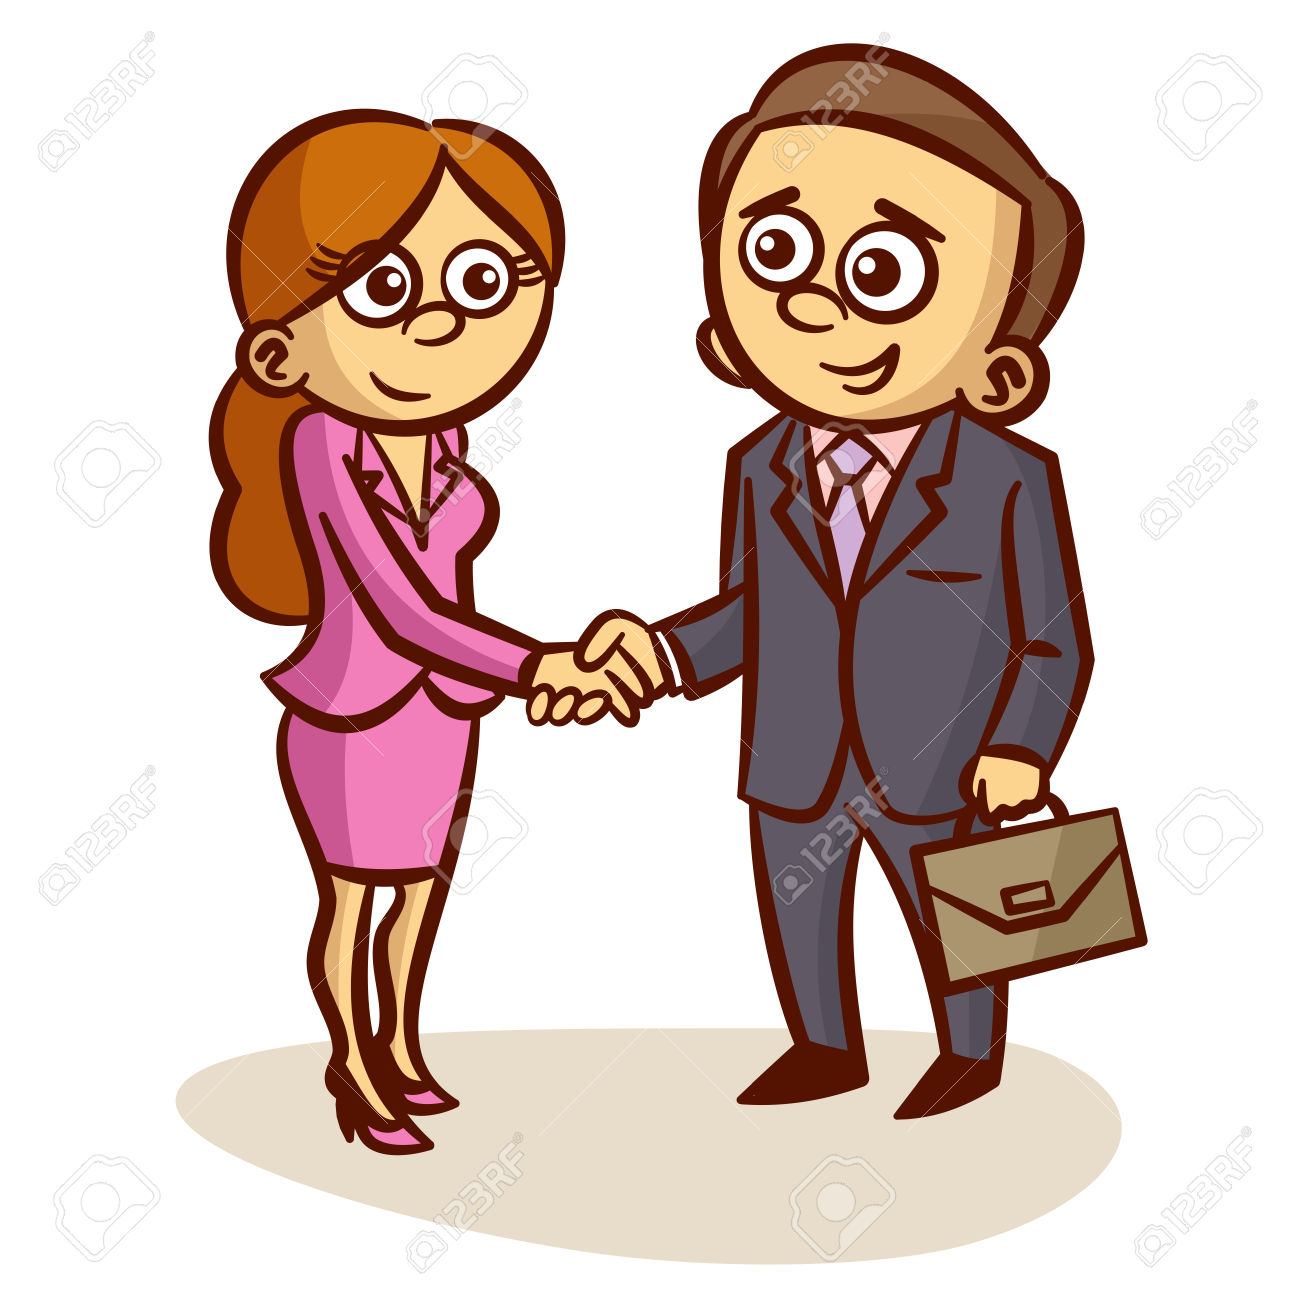 Business Partners Shaking Hands Partnership Clipart Royalty Free.